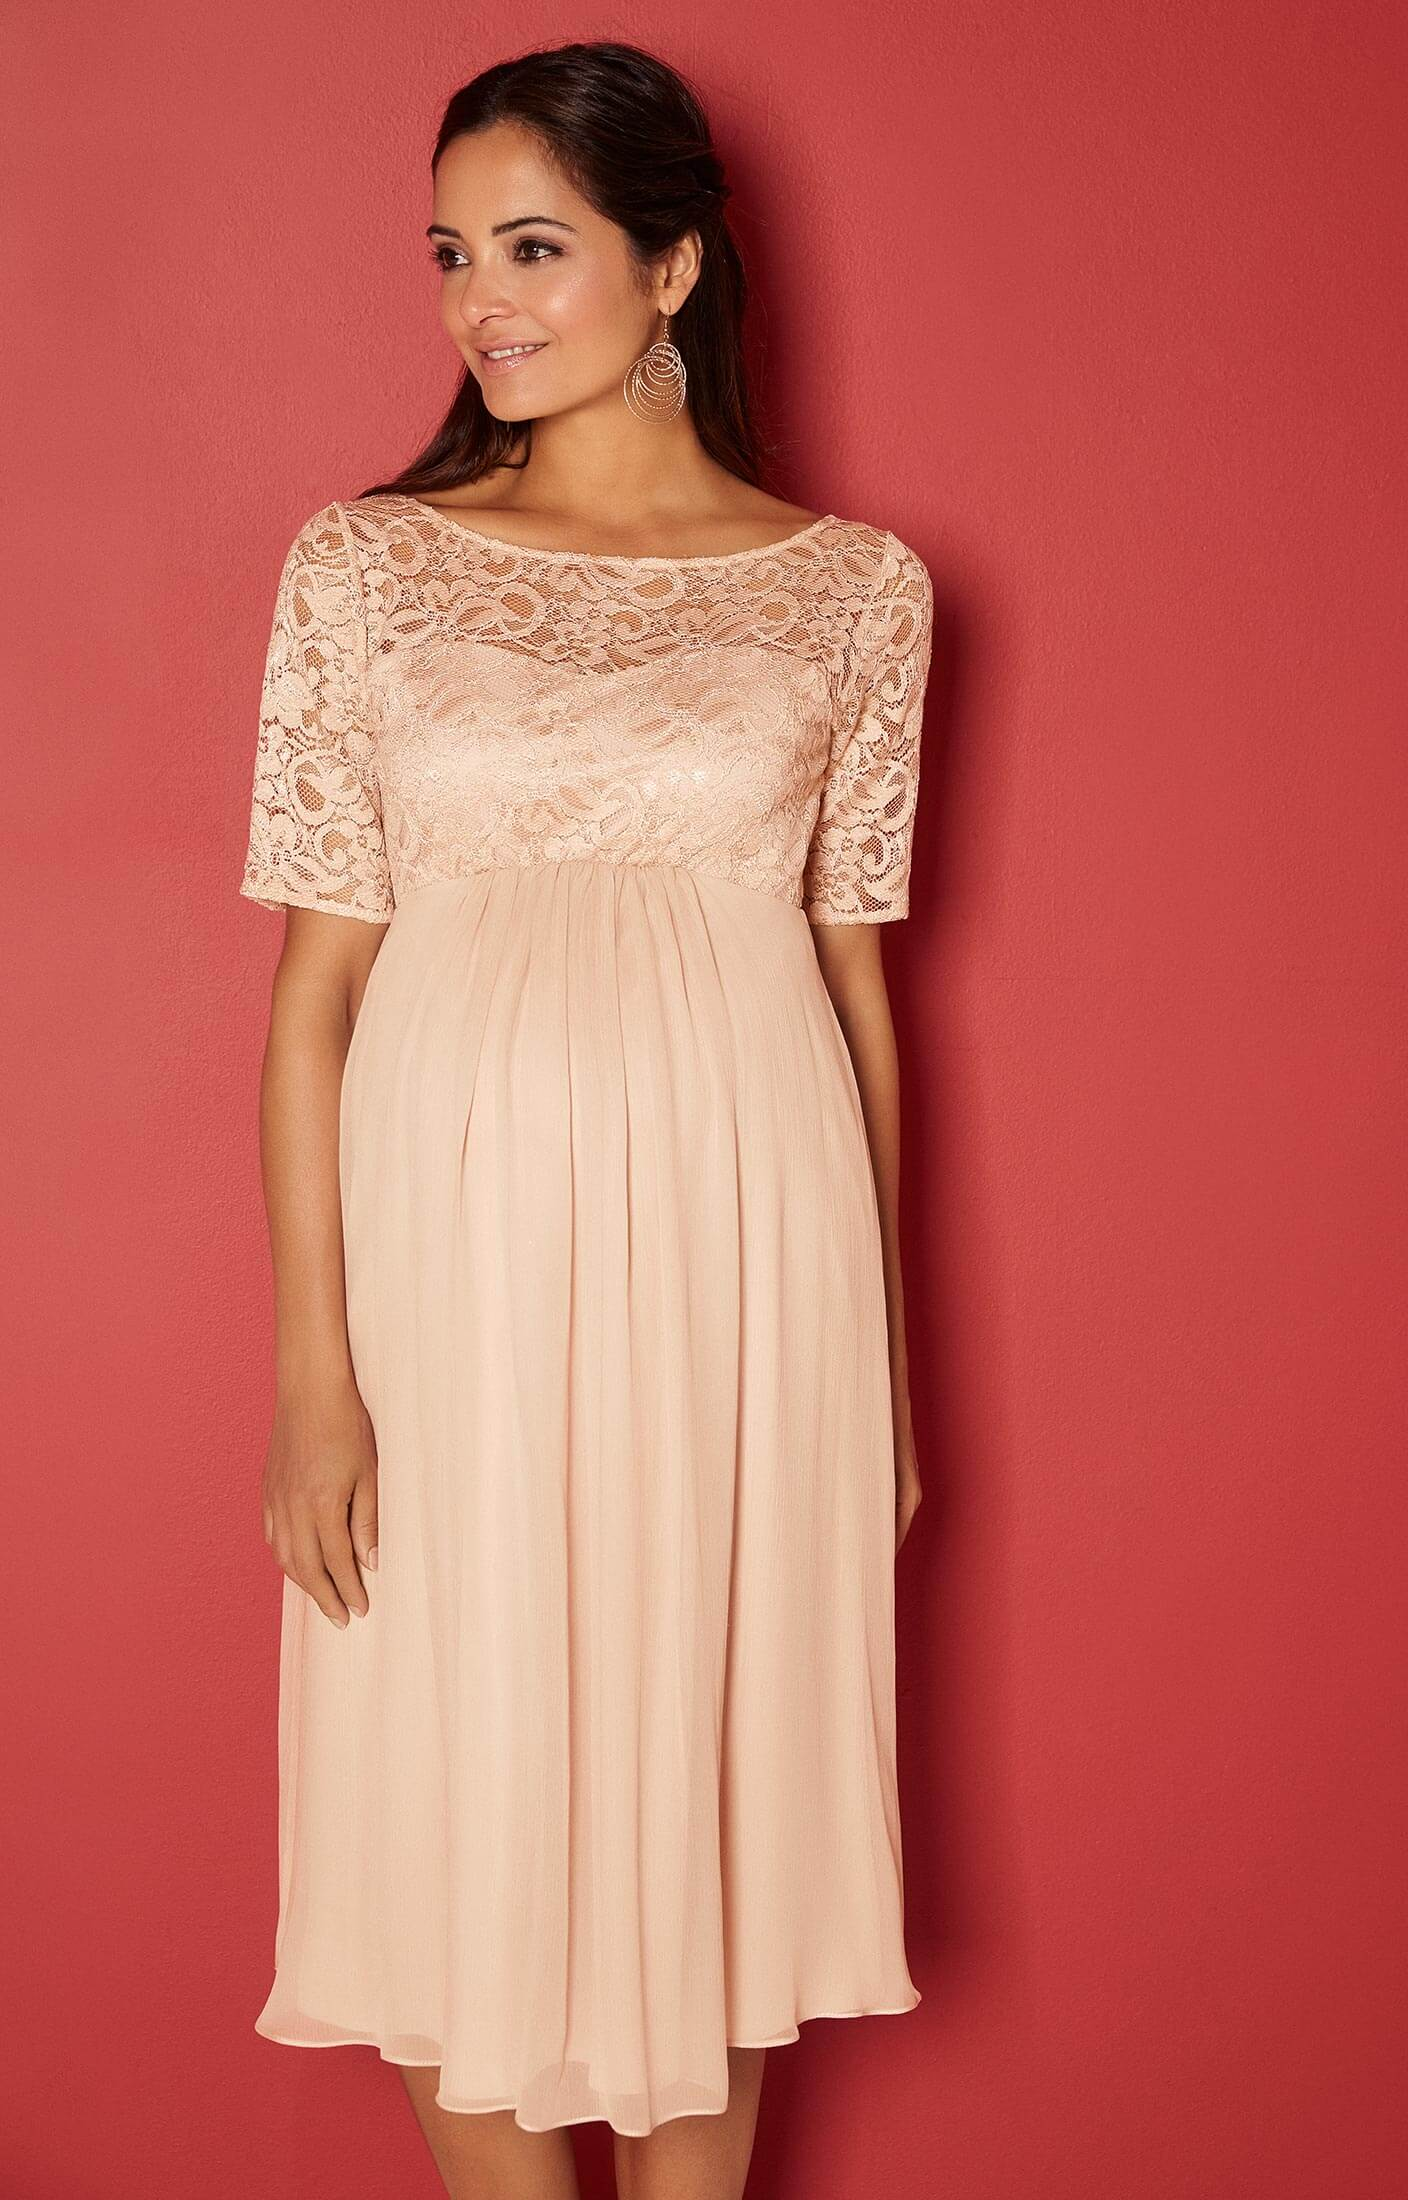 571822e9964 Alaska Maternity Silk Chiffon Dress in Peach Blush - Maternity Wedding  Dresses